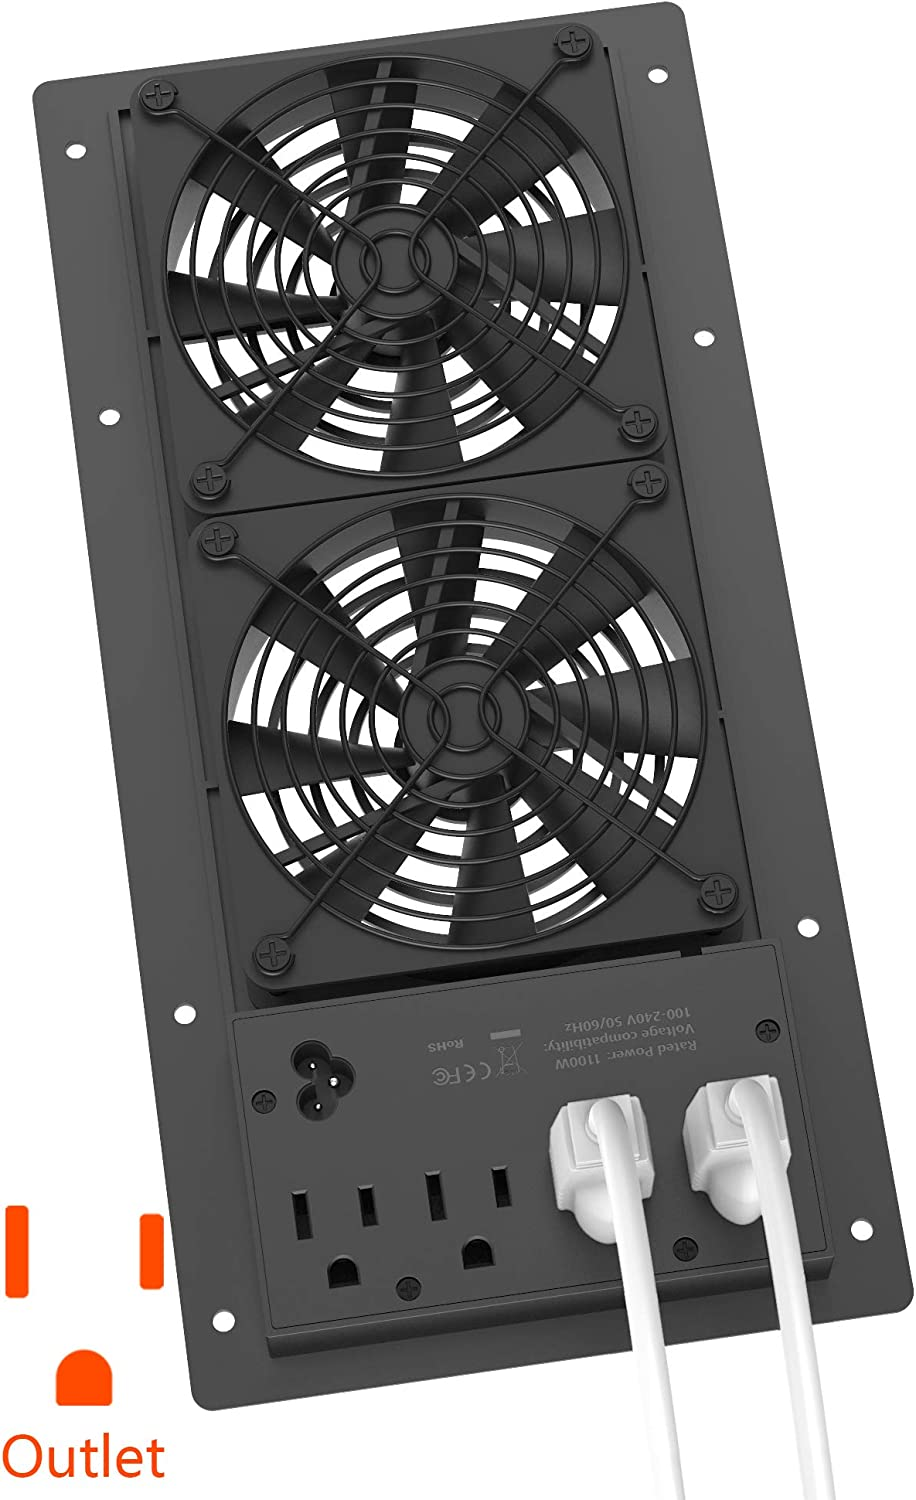 Hiree Quiet Cooling AC Fan Dual 4 inch Ventilation Axial Muffin Fan with 4 AC Power Outlet for Home Theater Receiver DVR Amps AV Computer Cabinet Closet Electronic Equipment DIY Vent Exhaust System